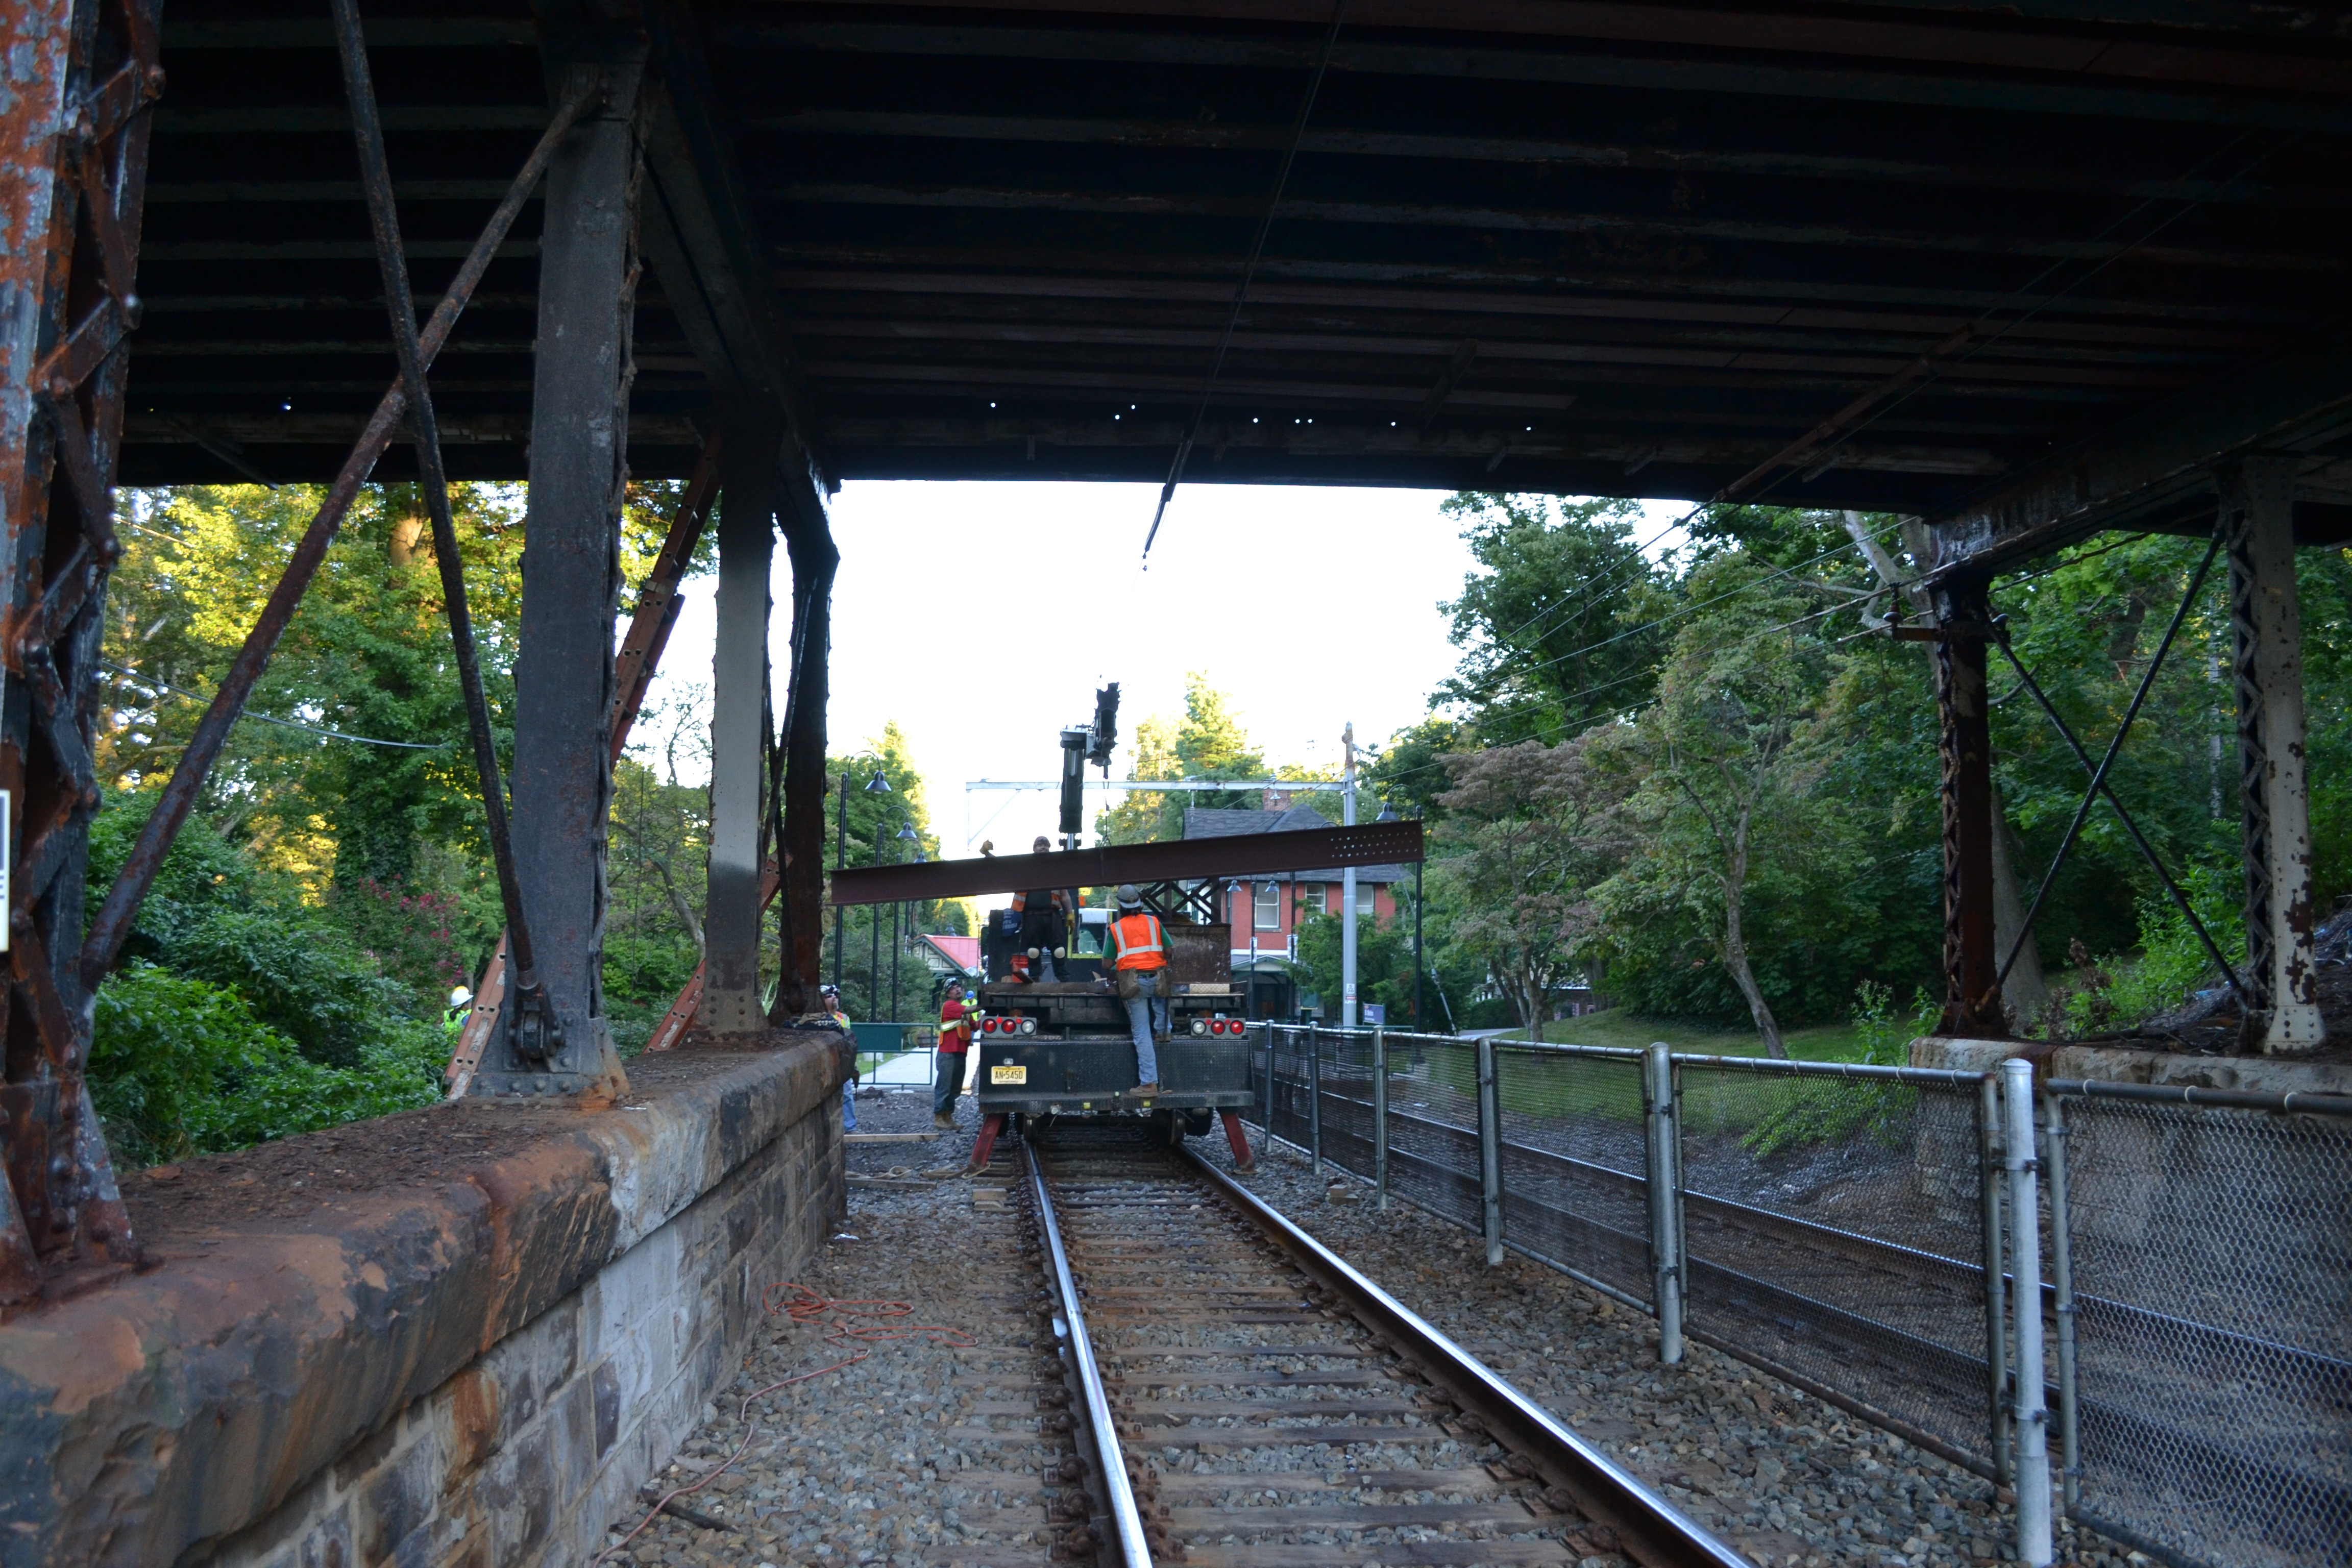 Crews completed the repairs over two weekend work blocks